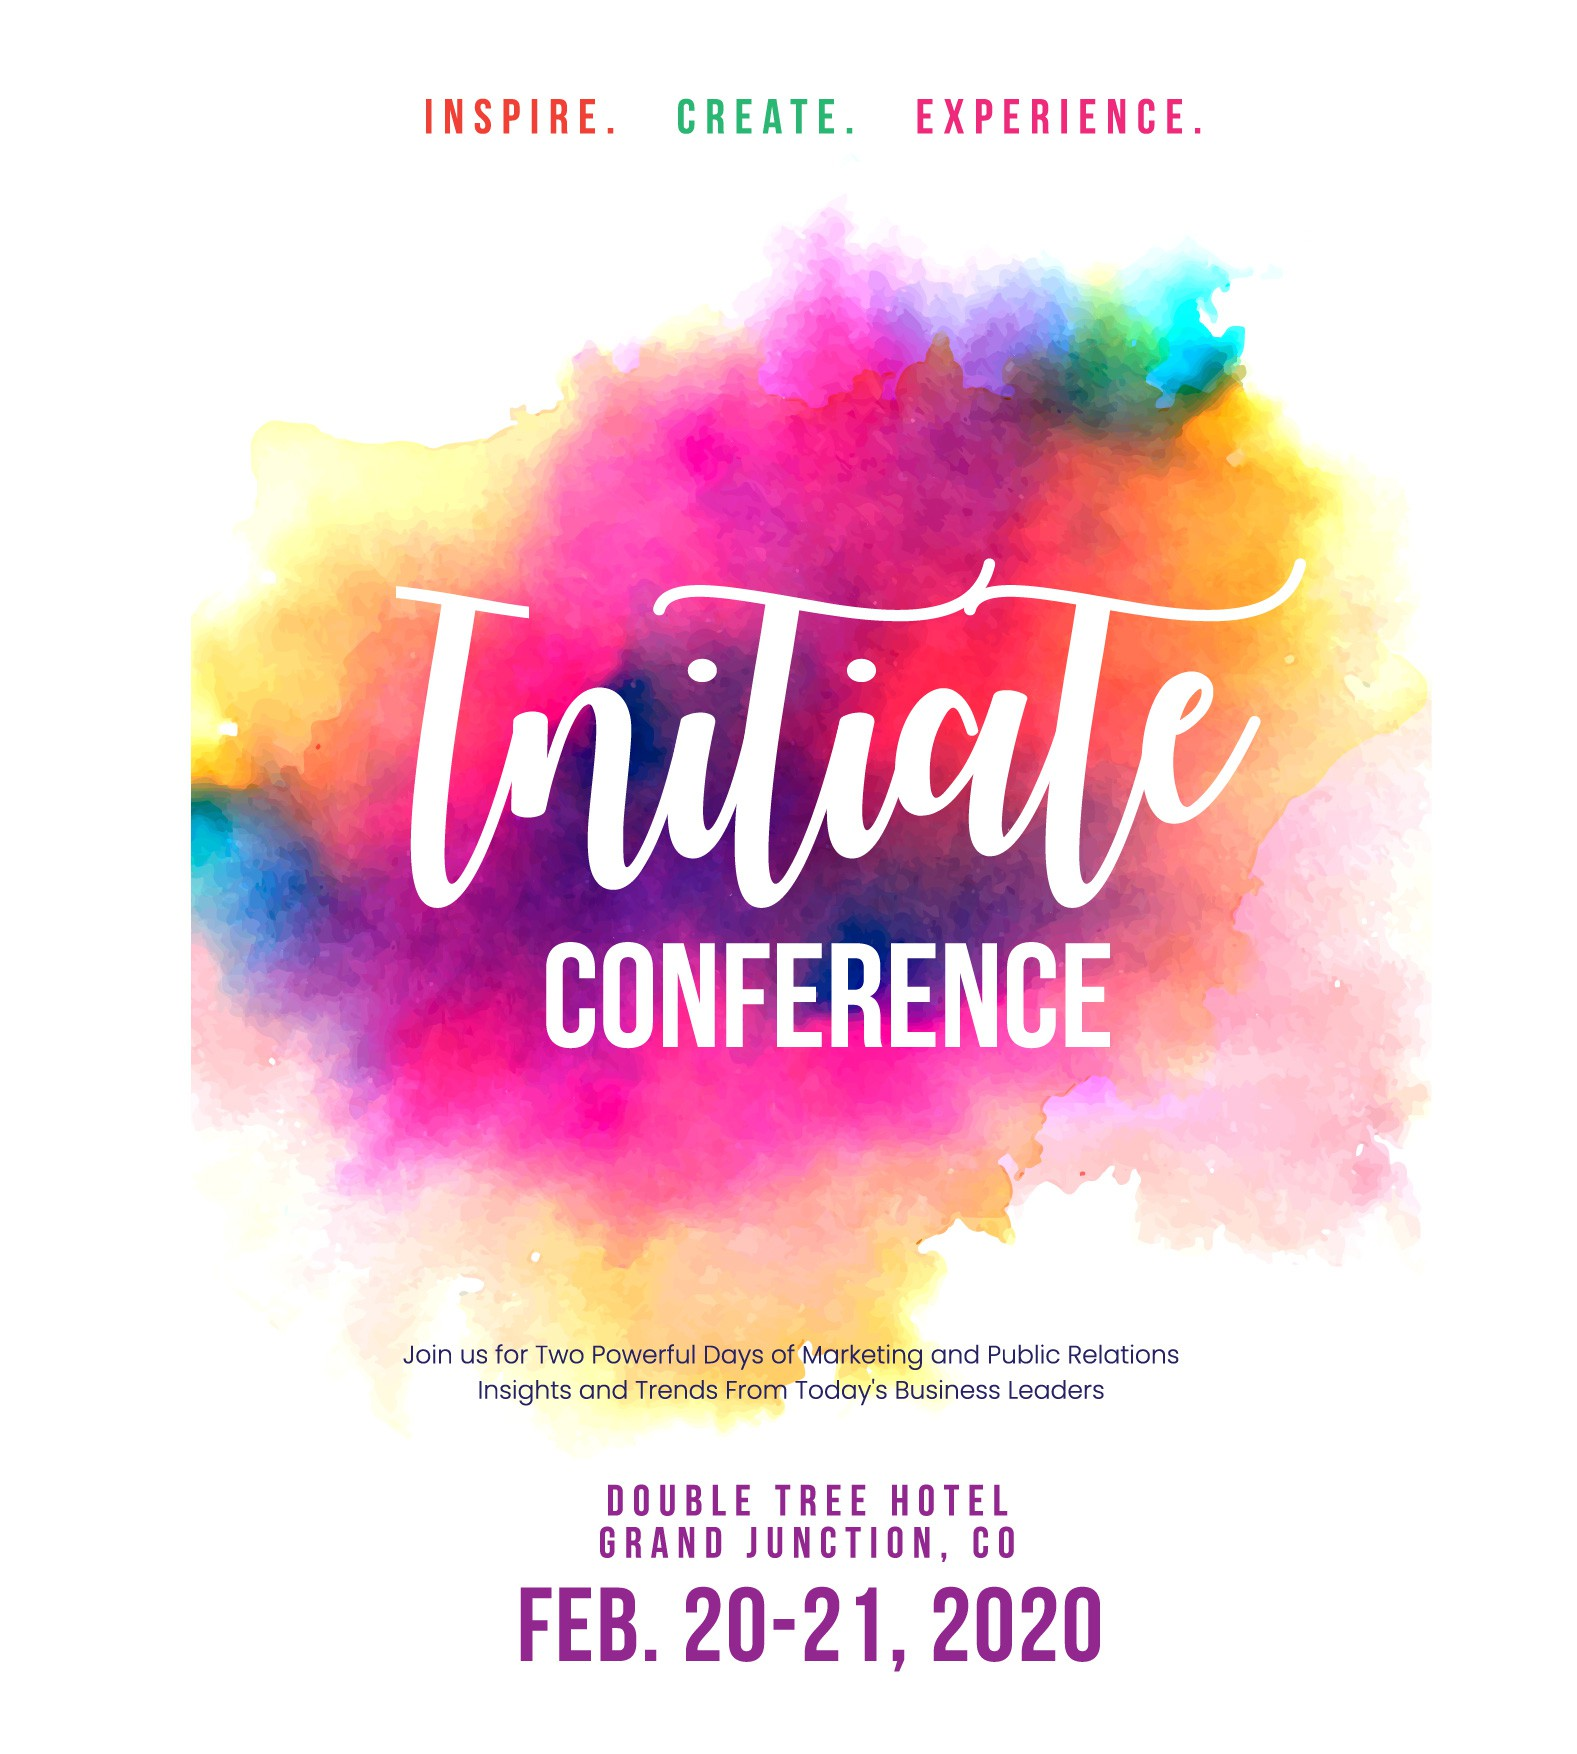 Inspire. Create. Experience. Initiate Conference 2020